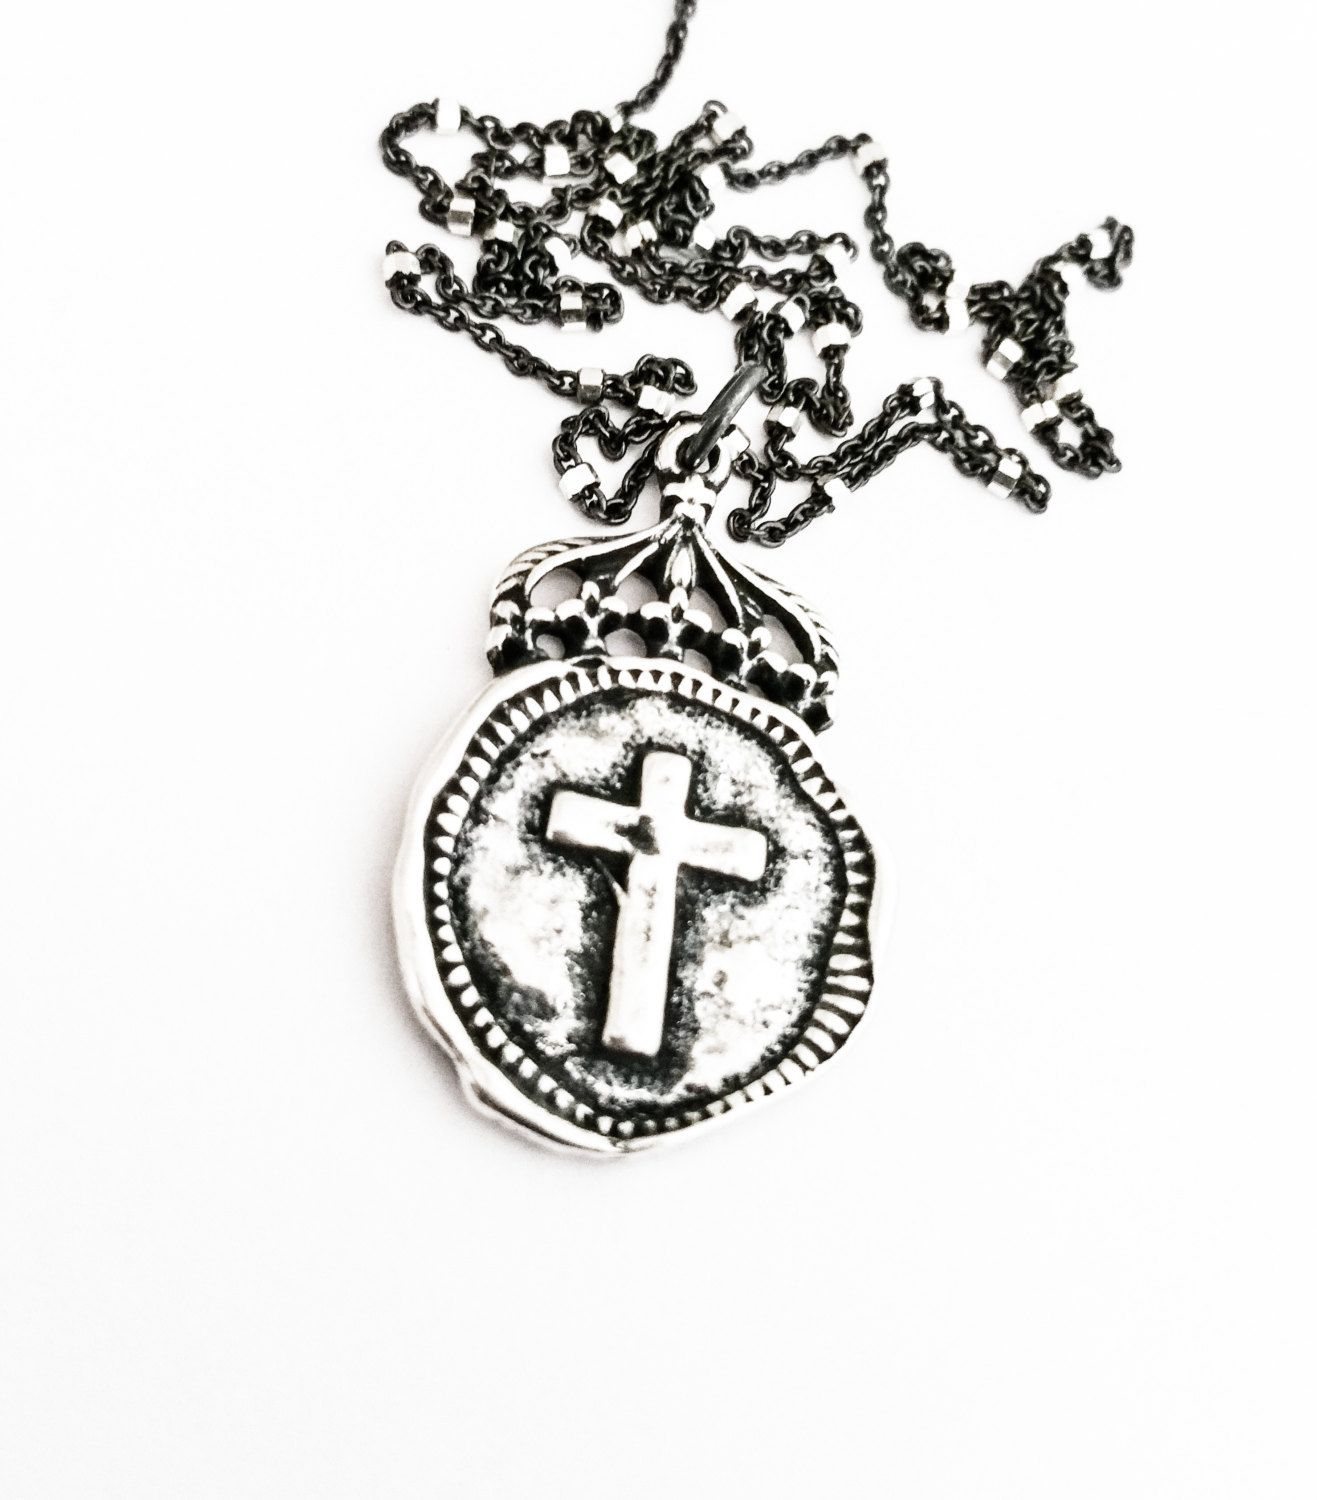 Silver Cross Coin Charm Necklace Vintage Style Bohemian Coin Jewelry Pendant Rhodium Layering Free USA Shipping - pinned by pin4etsy.com